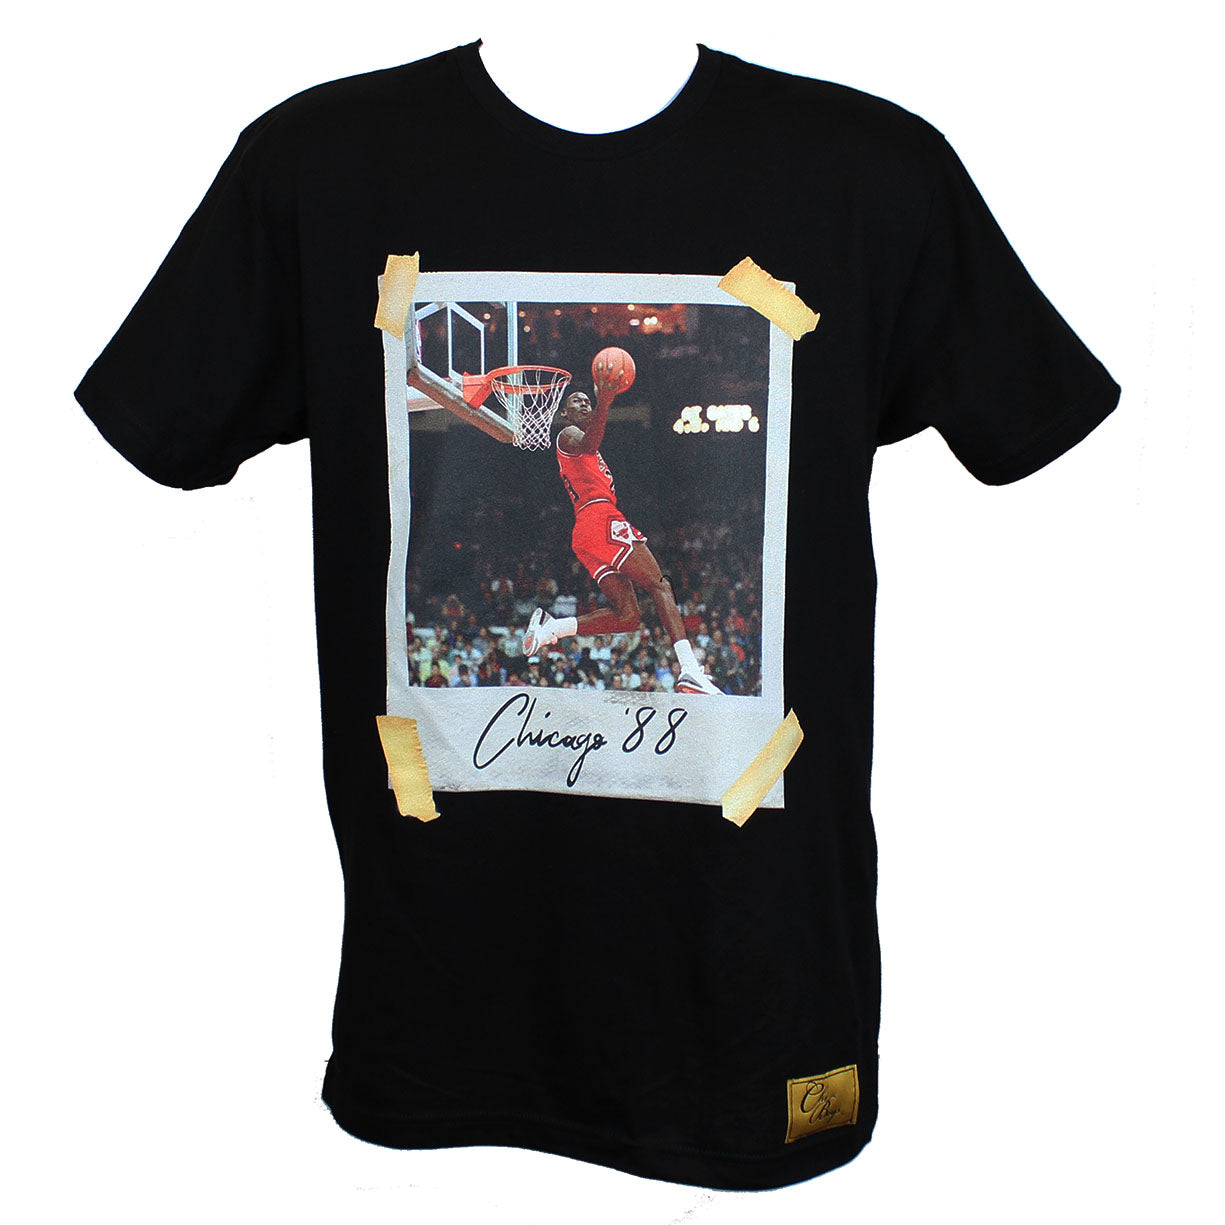 Chicago '88 Pay Homage Tee (Black)